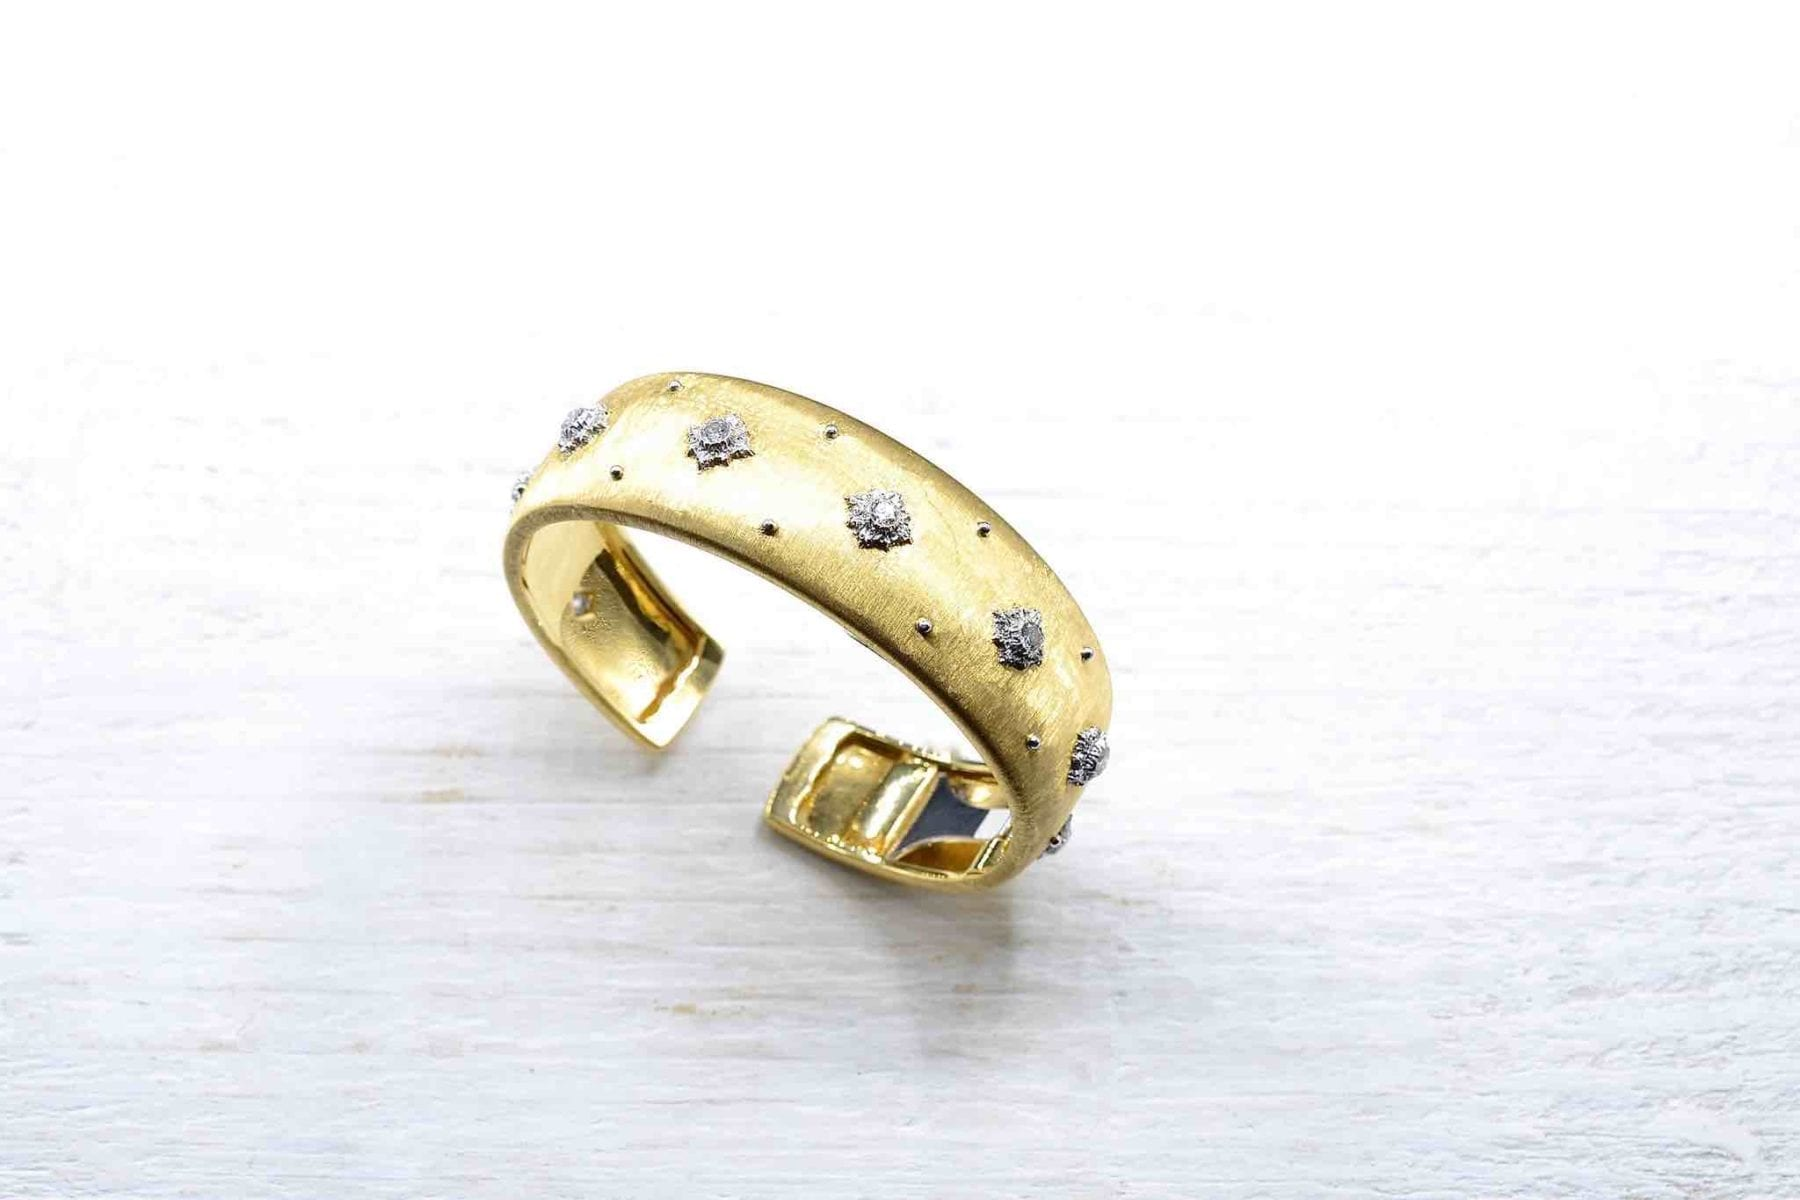 Bracelet Buccellati 1960 diamants et or jaune 18k